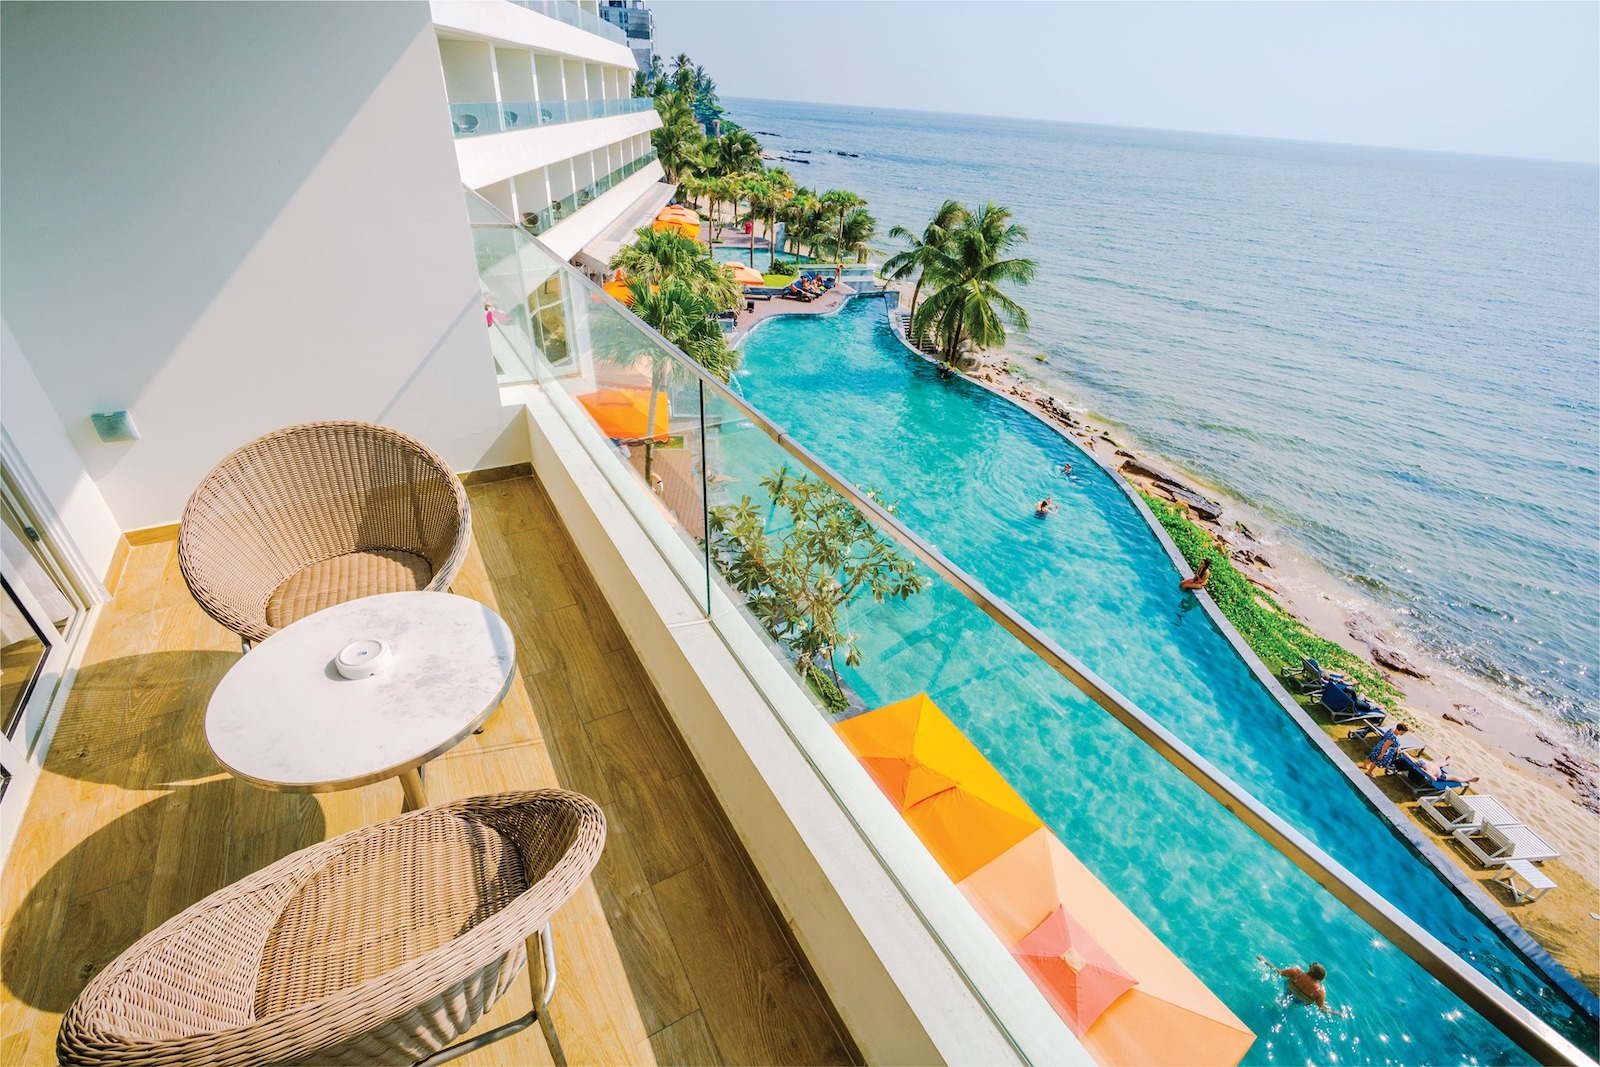 Image of the Seashells Phu Quoc Hotel & Spa in Vietnam